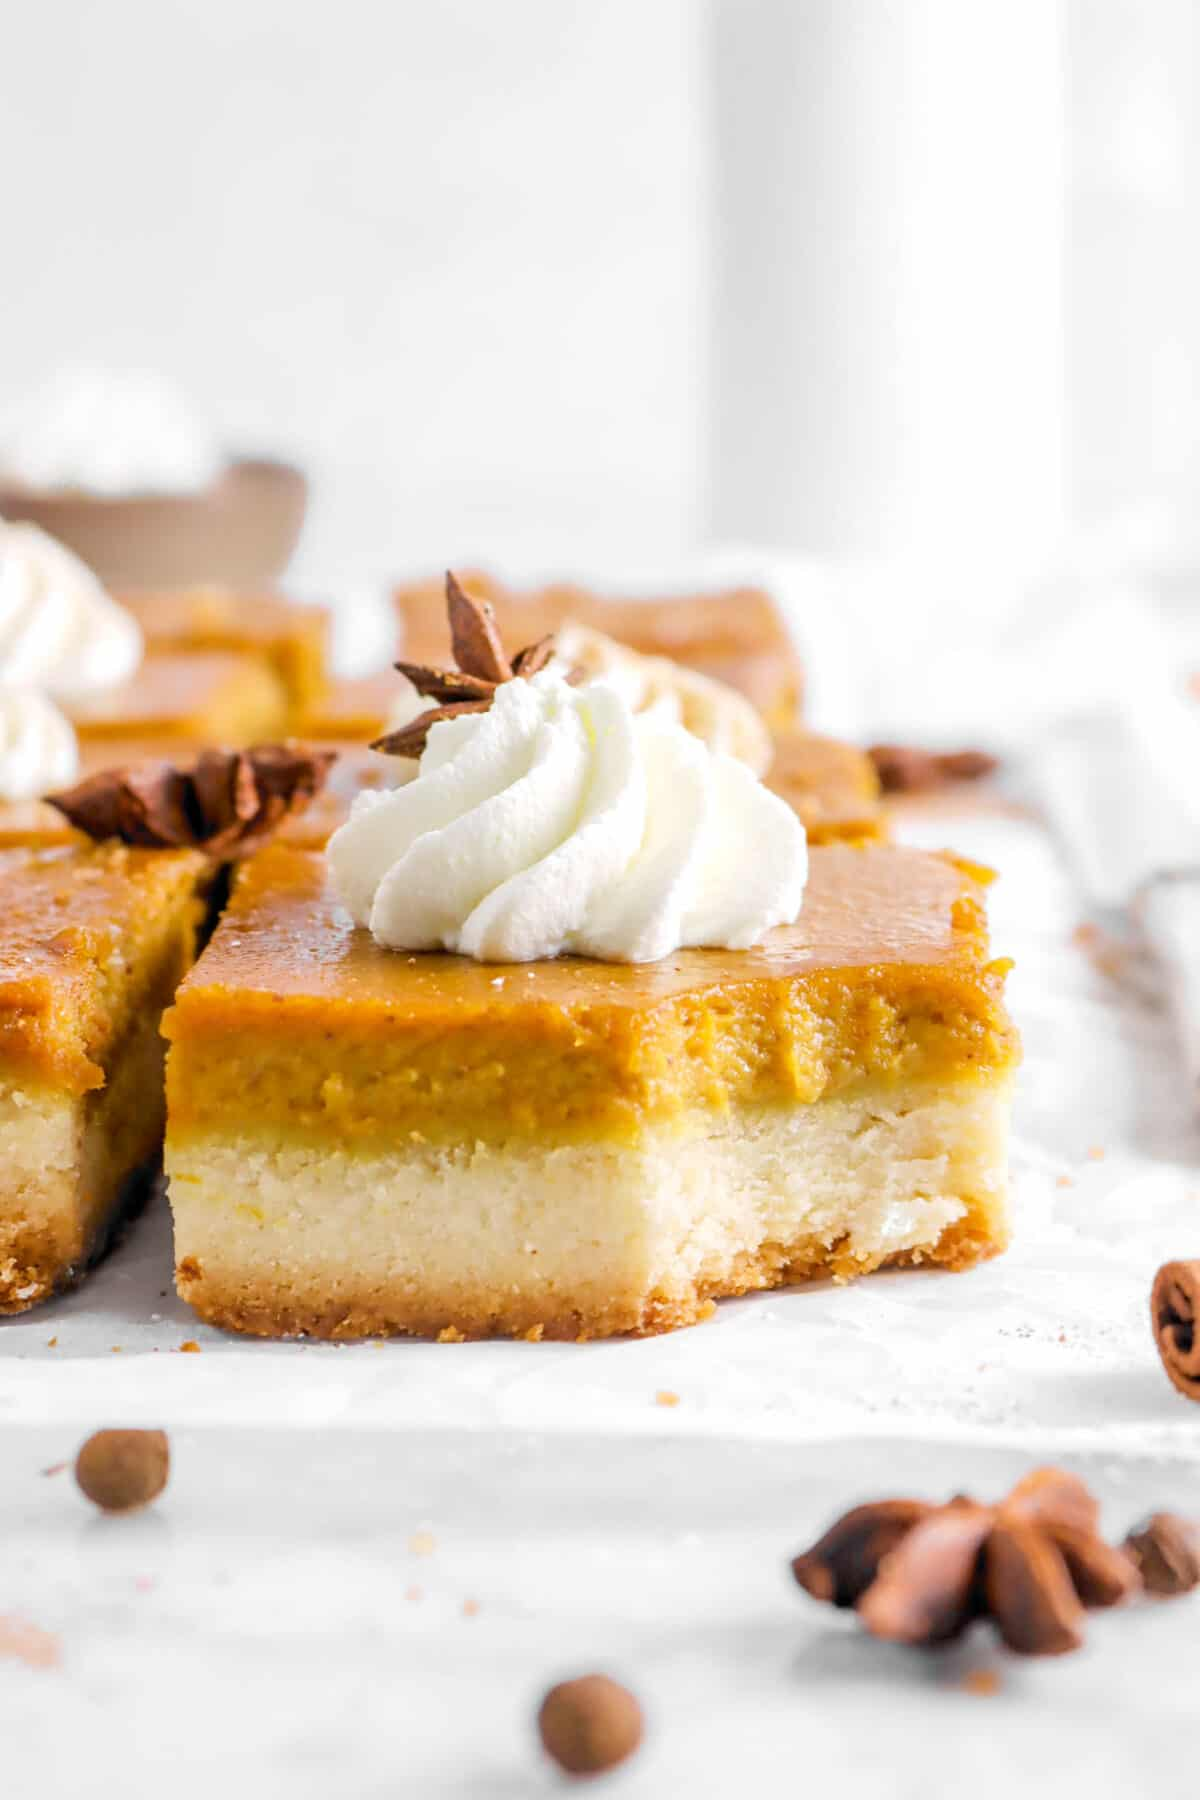 pumpkin bar with whipped cream, star anise, and a bite missing